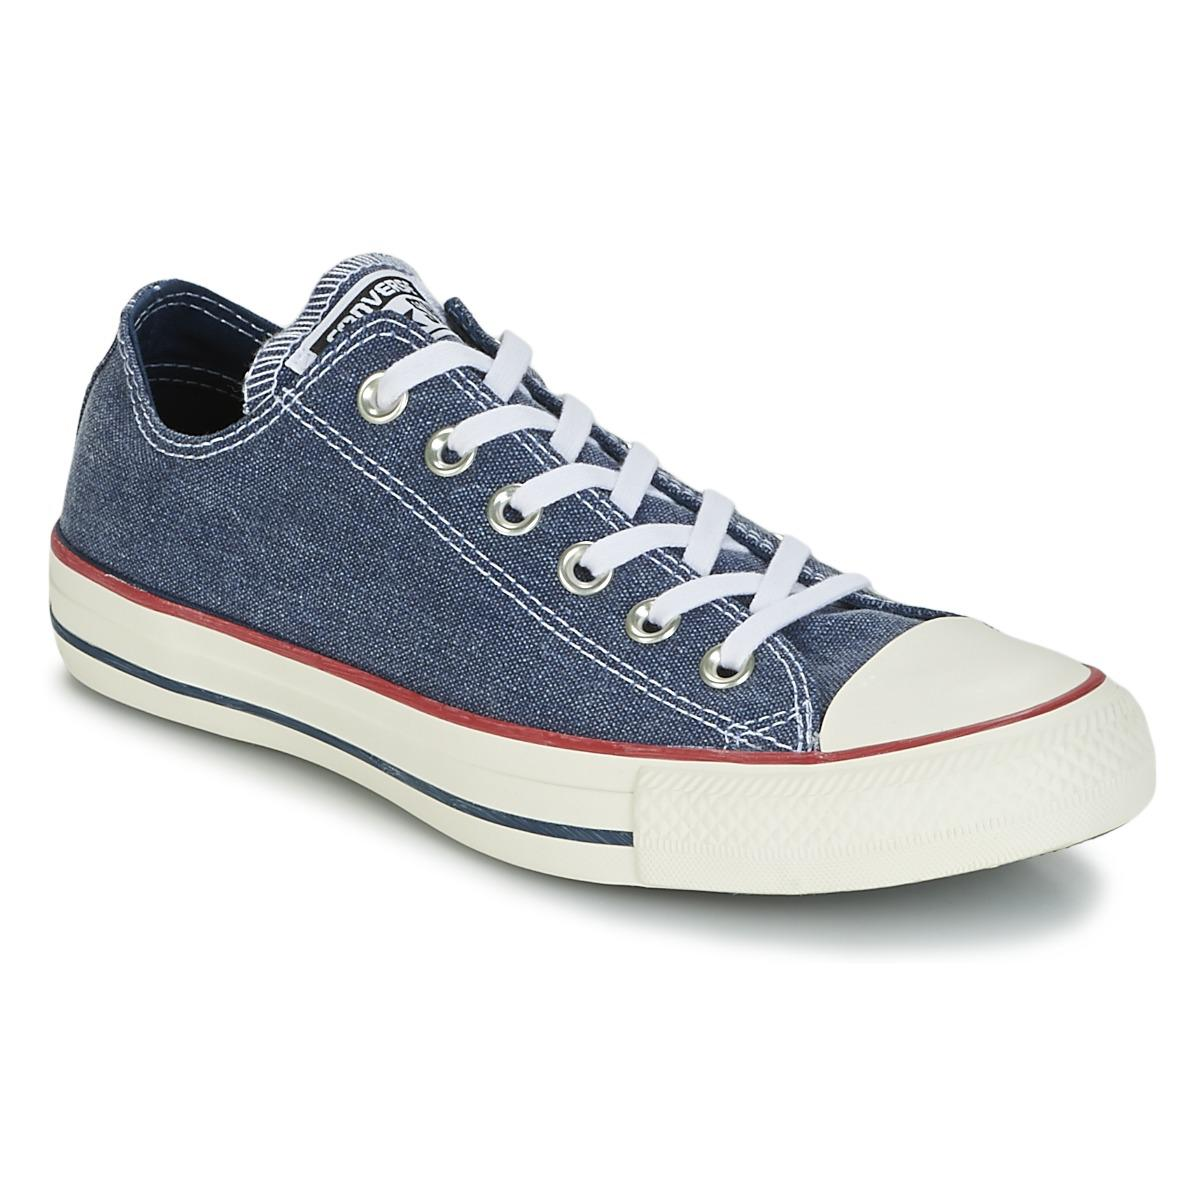 639fca53c7c8 Converse Chuck Taylor All Star Ox Stone Wash Shoes (trainers) in ...